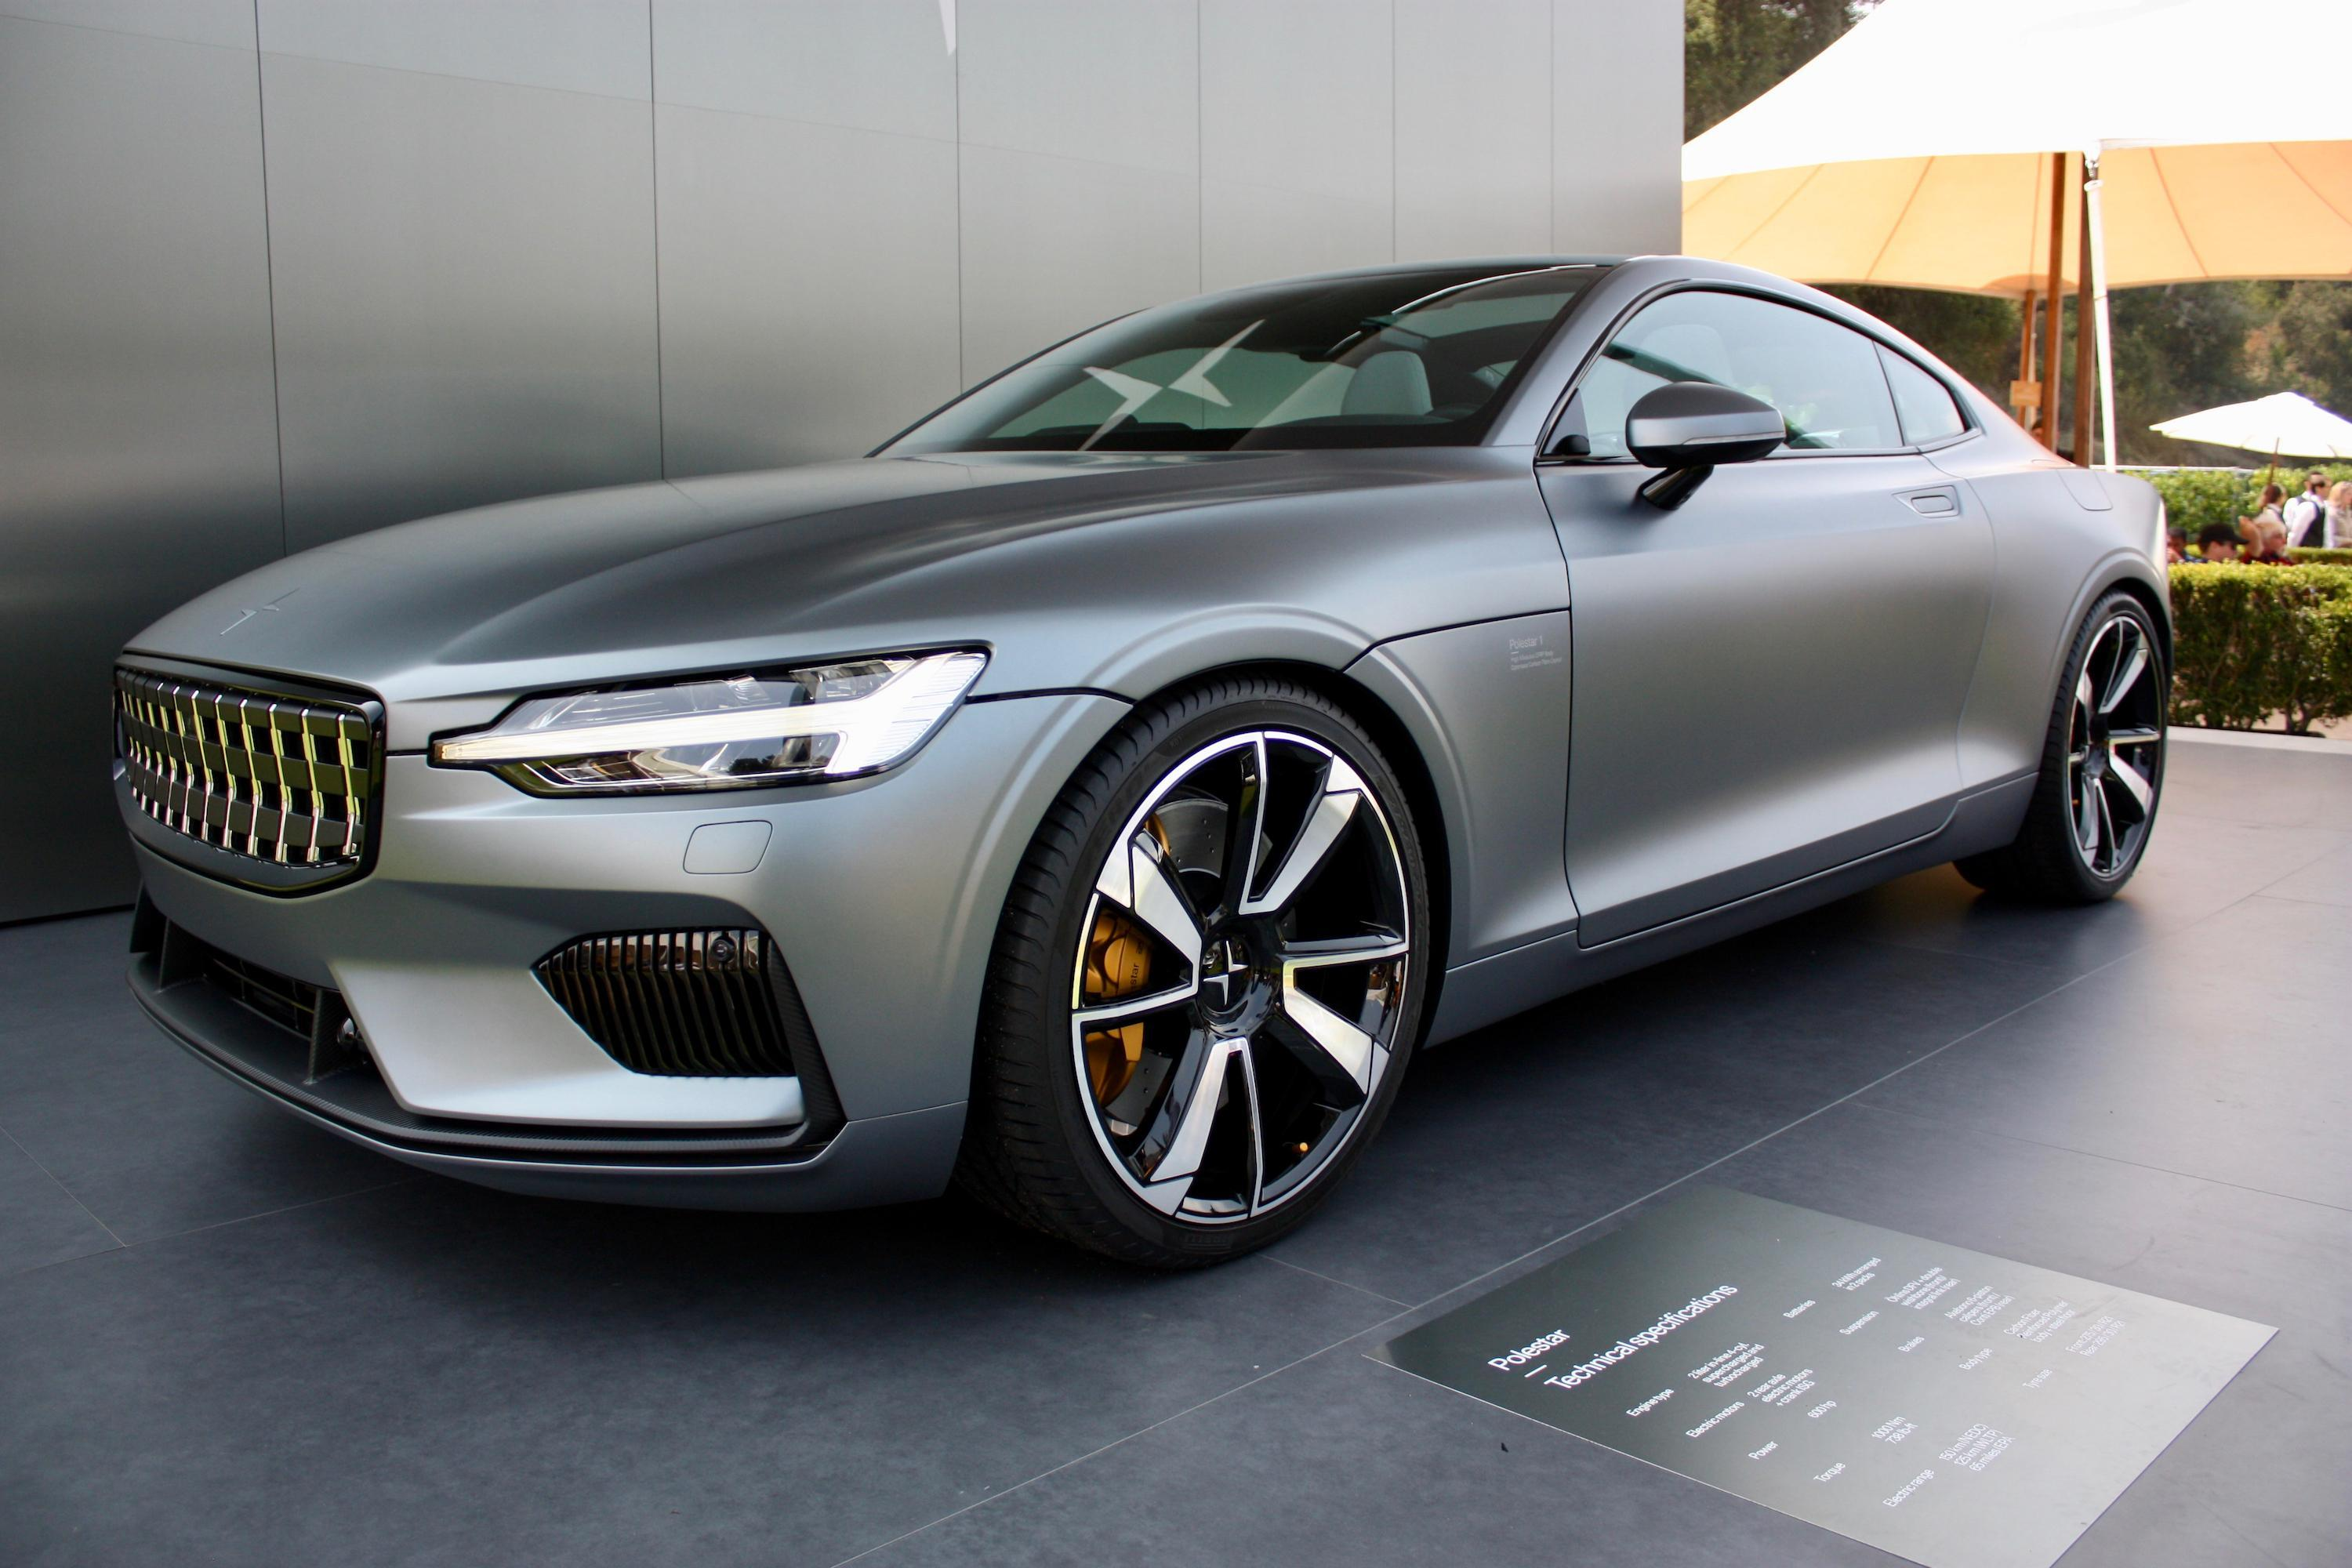 2018 Polestar 1 Pictures, Photos, Wallpapers And Video. | Top Speed